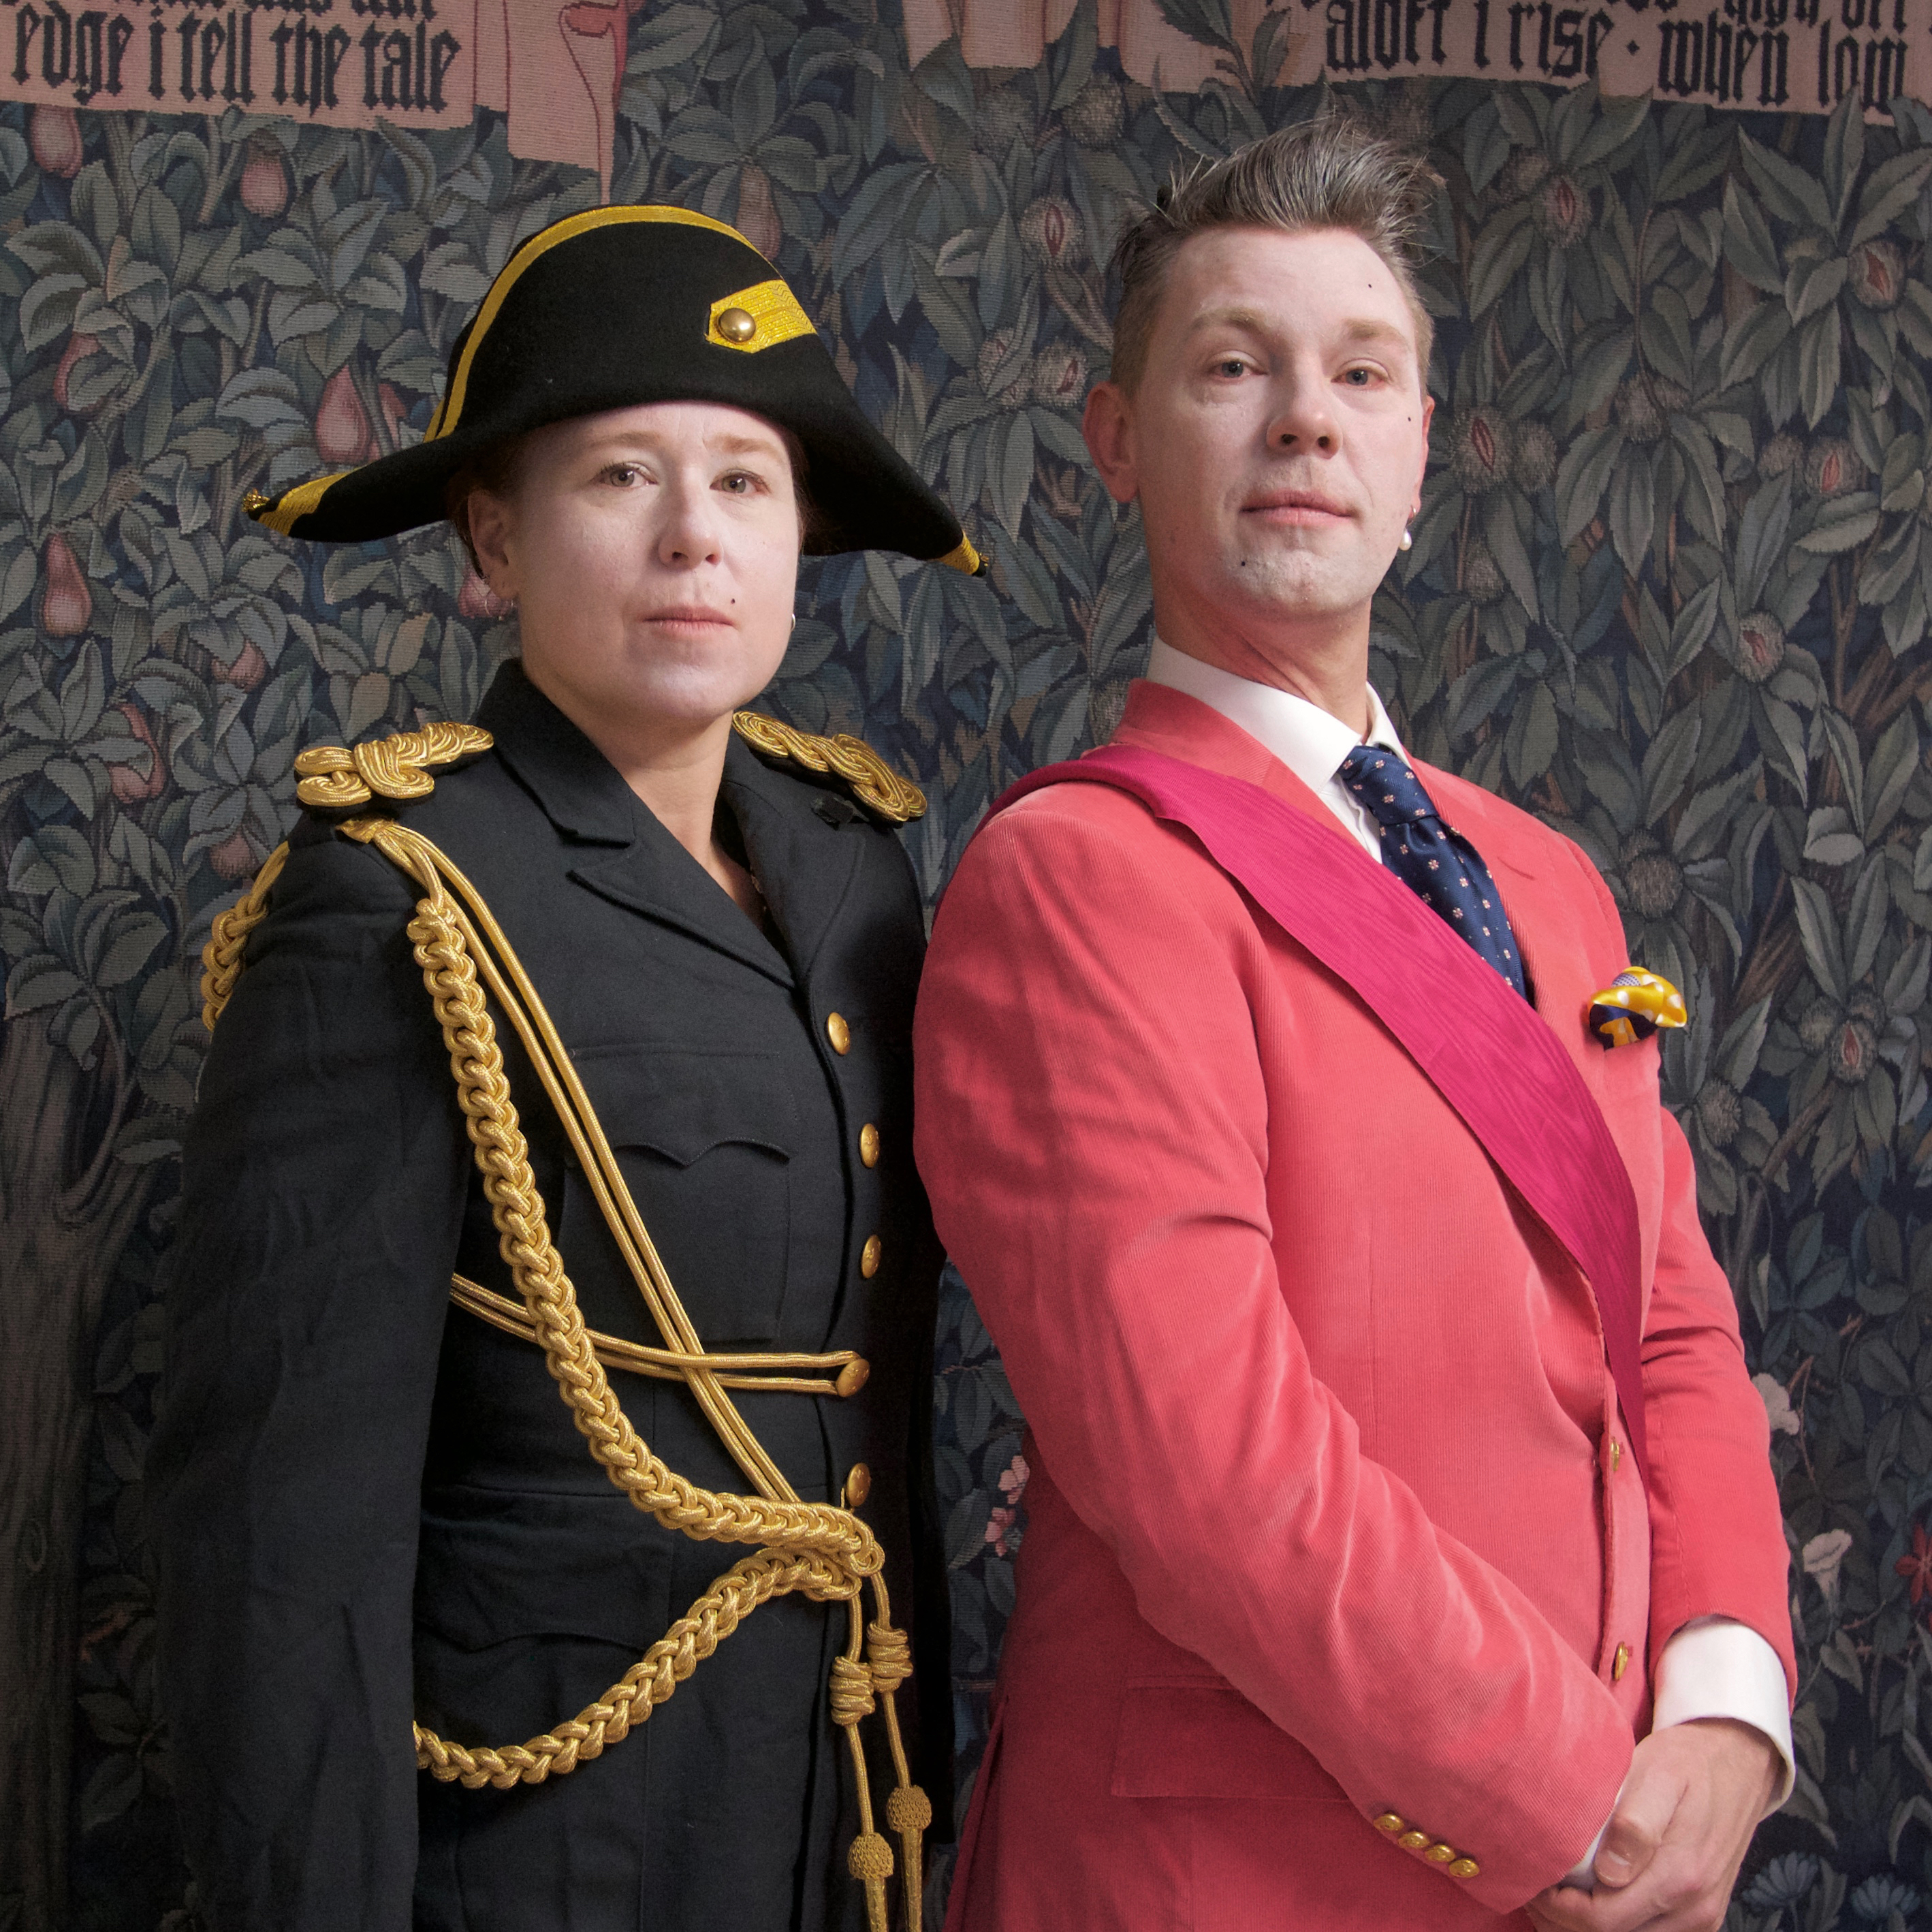 Prince Frei and Aide-de-Camp Linda Elmgren-Warberg to open performance festival